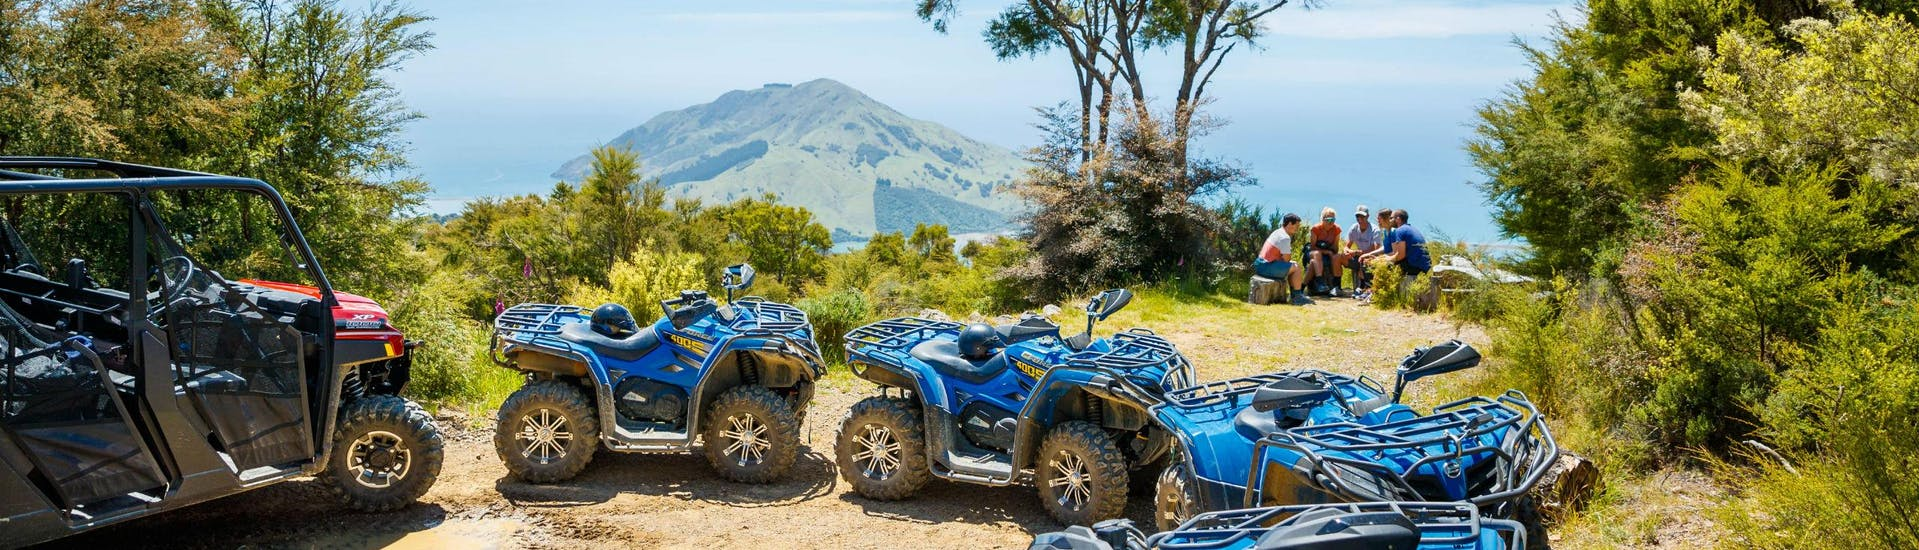 quad-biking-in-nelson-bayview-circuit-tour-cable-bay-adventure-park-nelson-hero